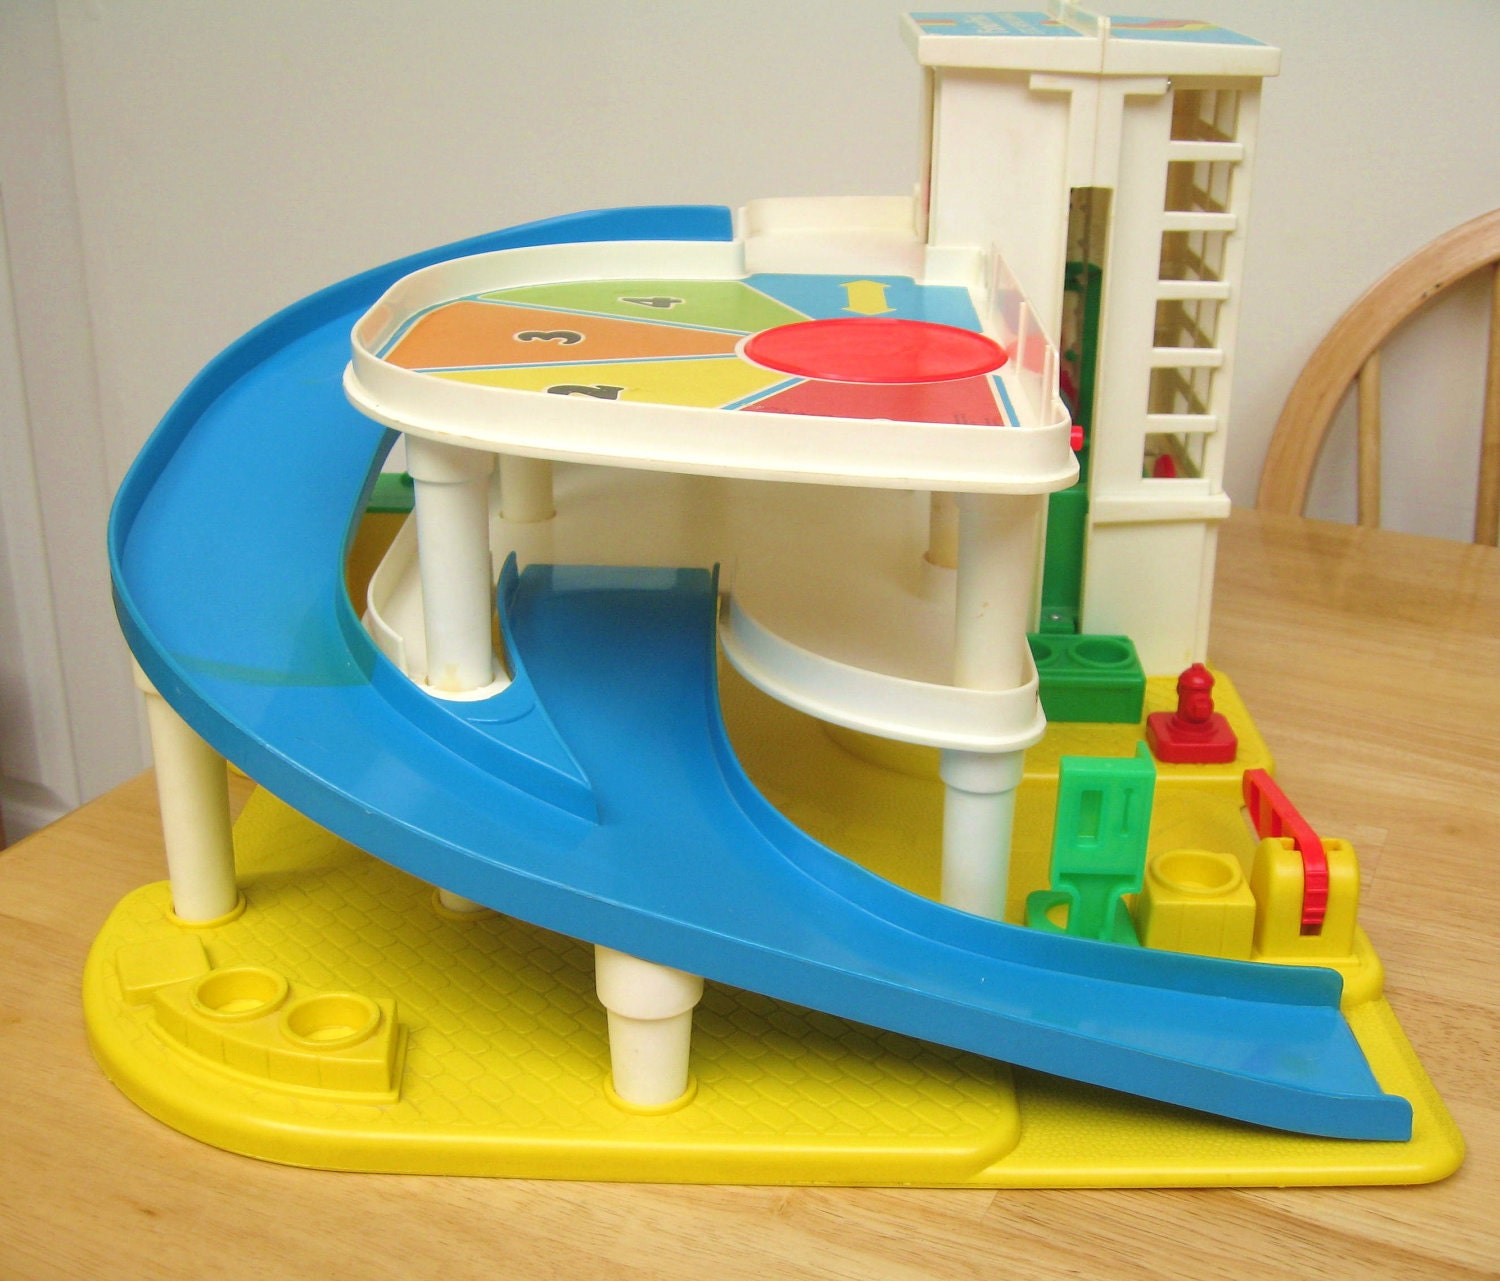 Fisher price vintage toys Etsy FR